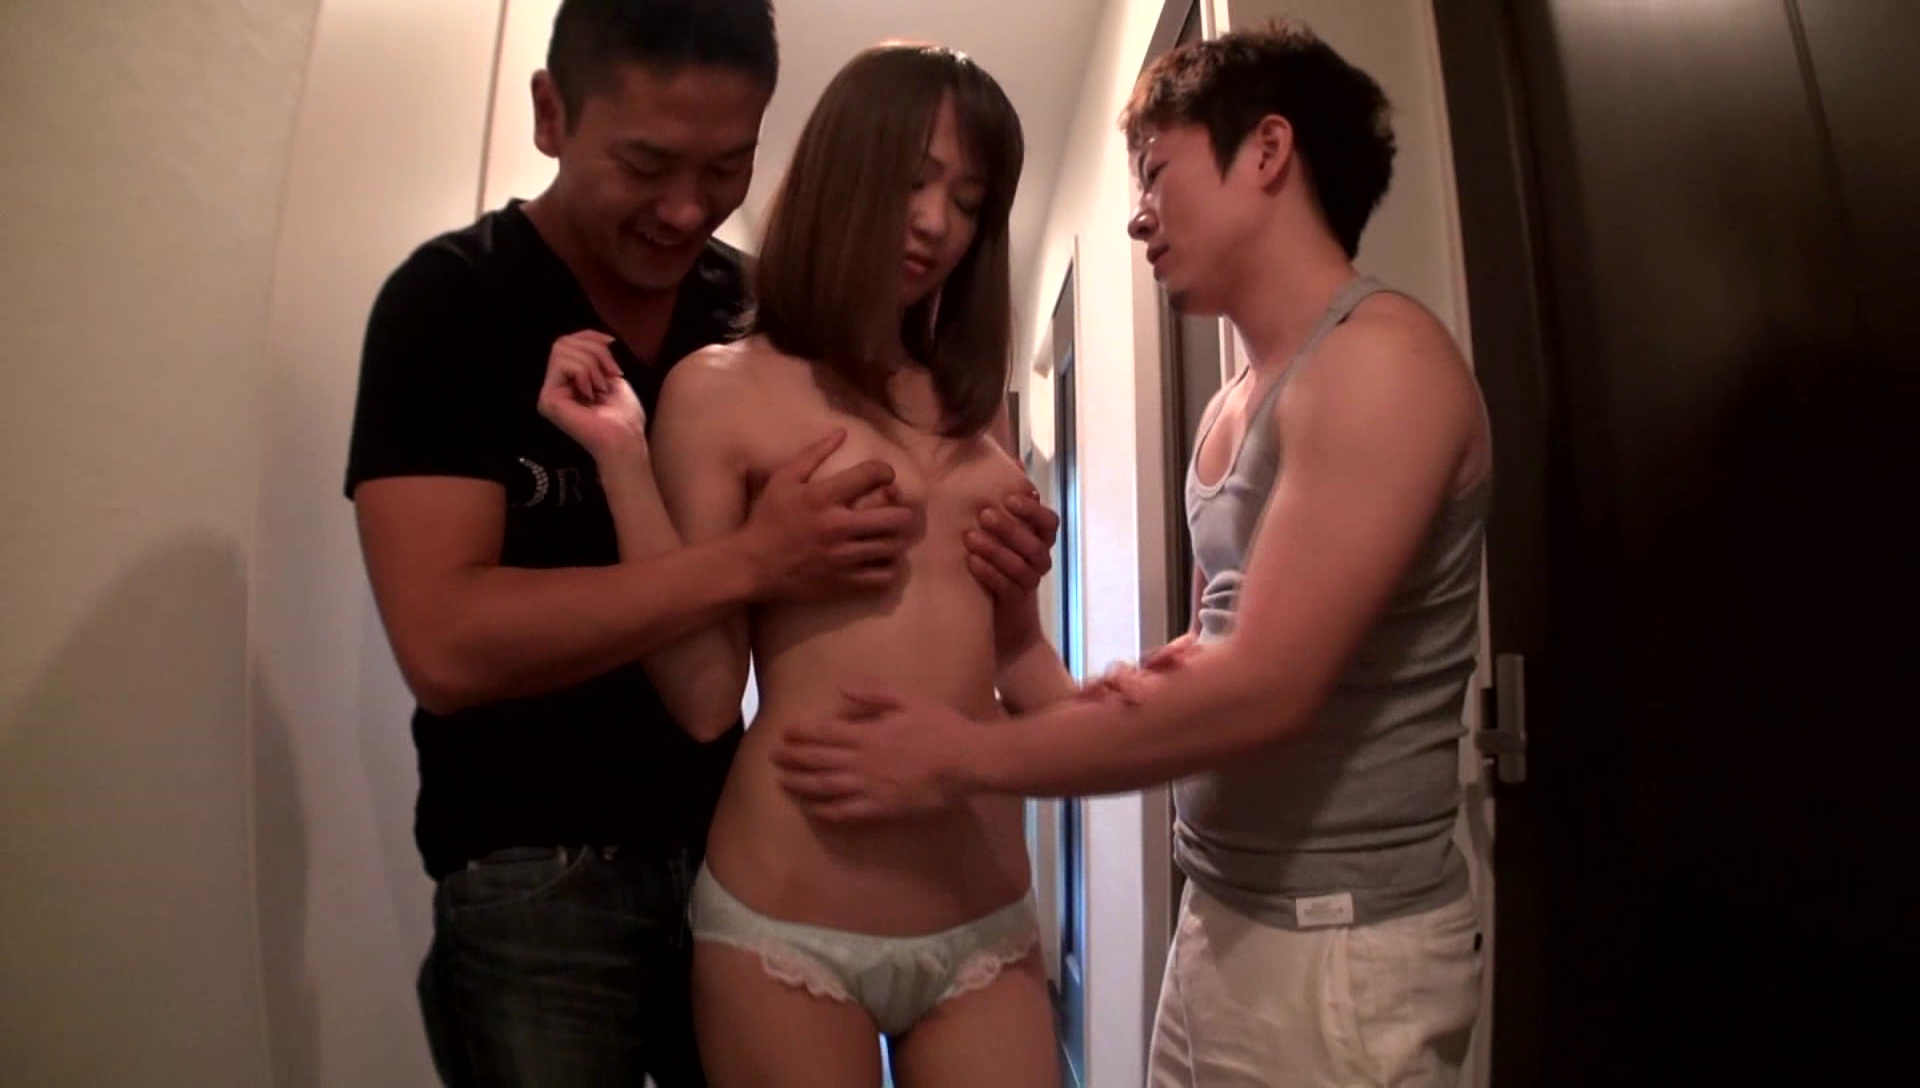 DGL-037 During the Absence of Her Husband SEX with Married Woman – Yuka Yamaguchi